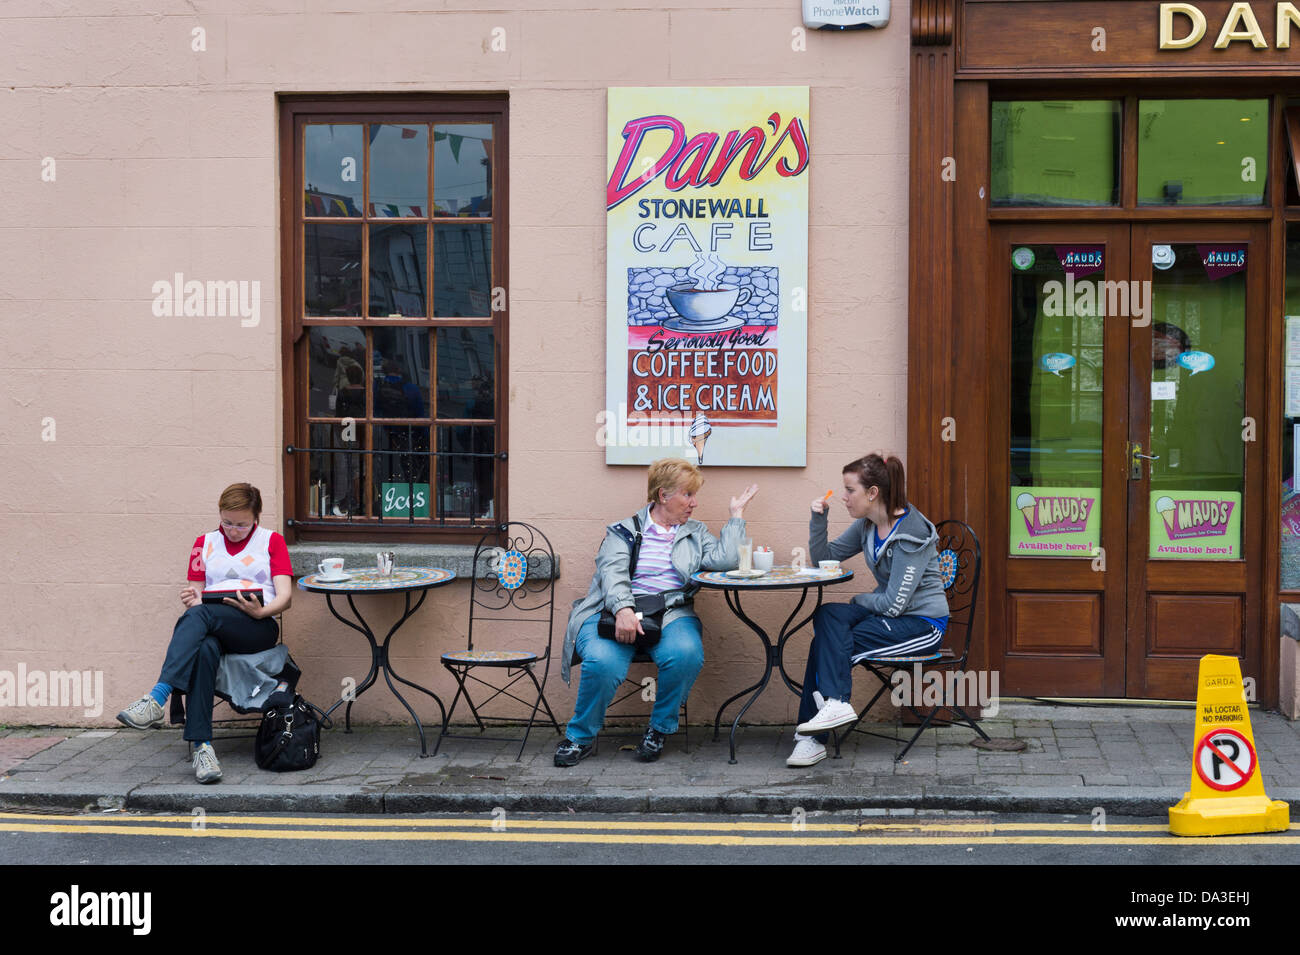 Pavement cafe, Carlingford, County Louth, Ireland. Stock Photo